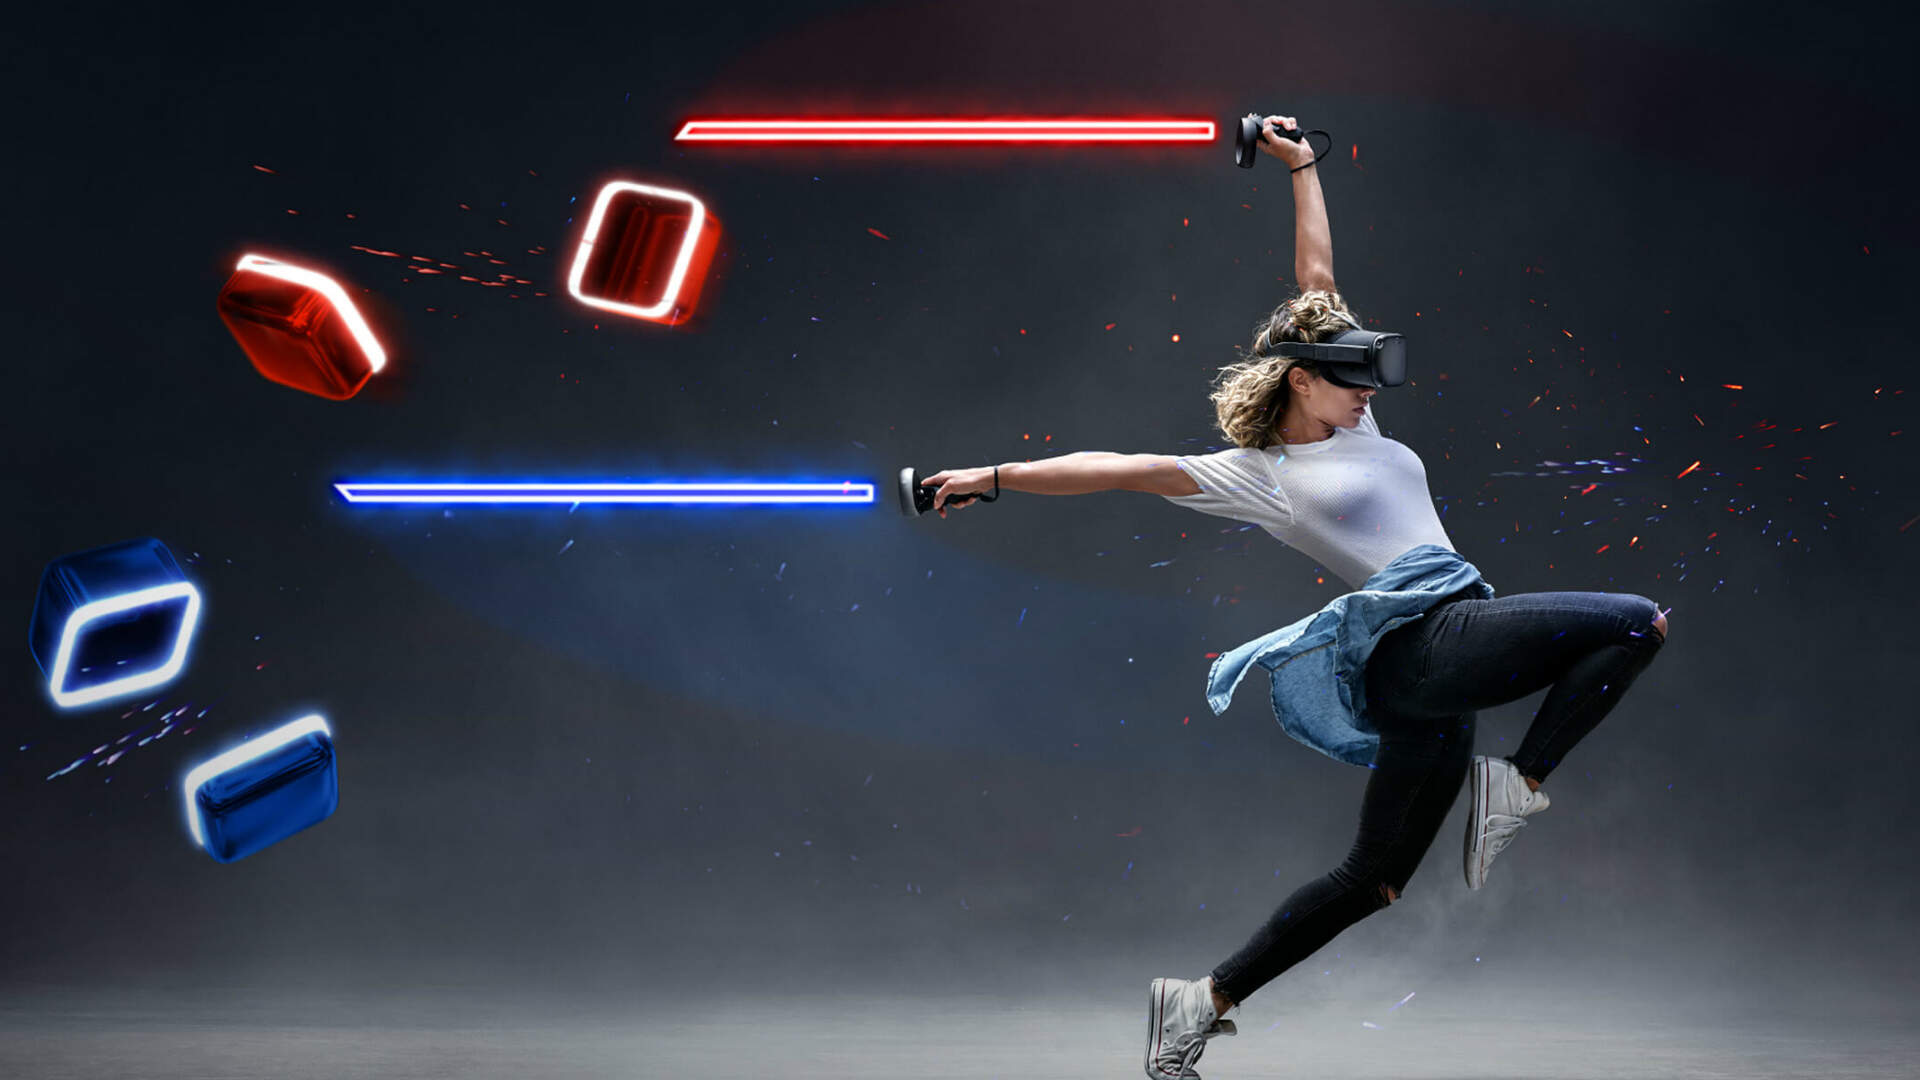 There's Now a Way to Play Oculus Rift Games on Your Oculus Quest